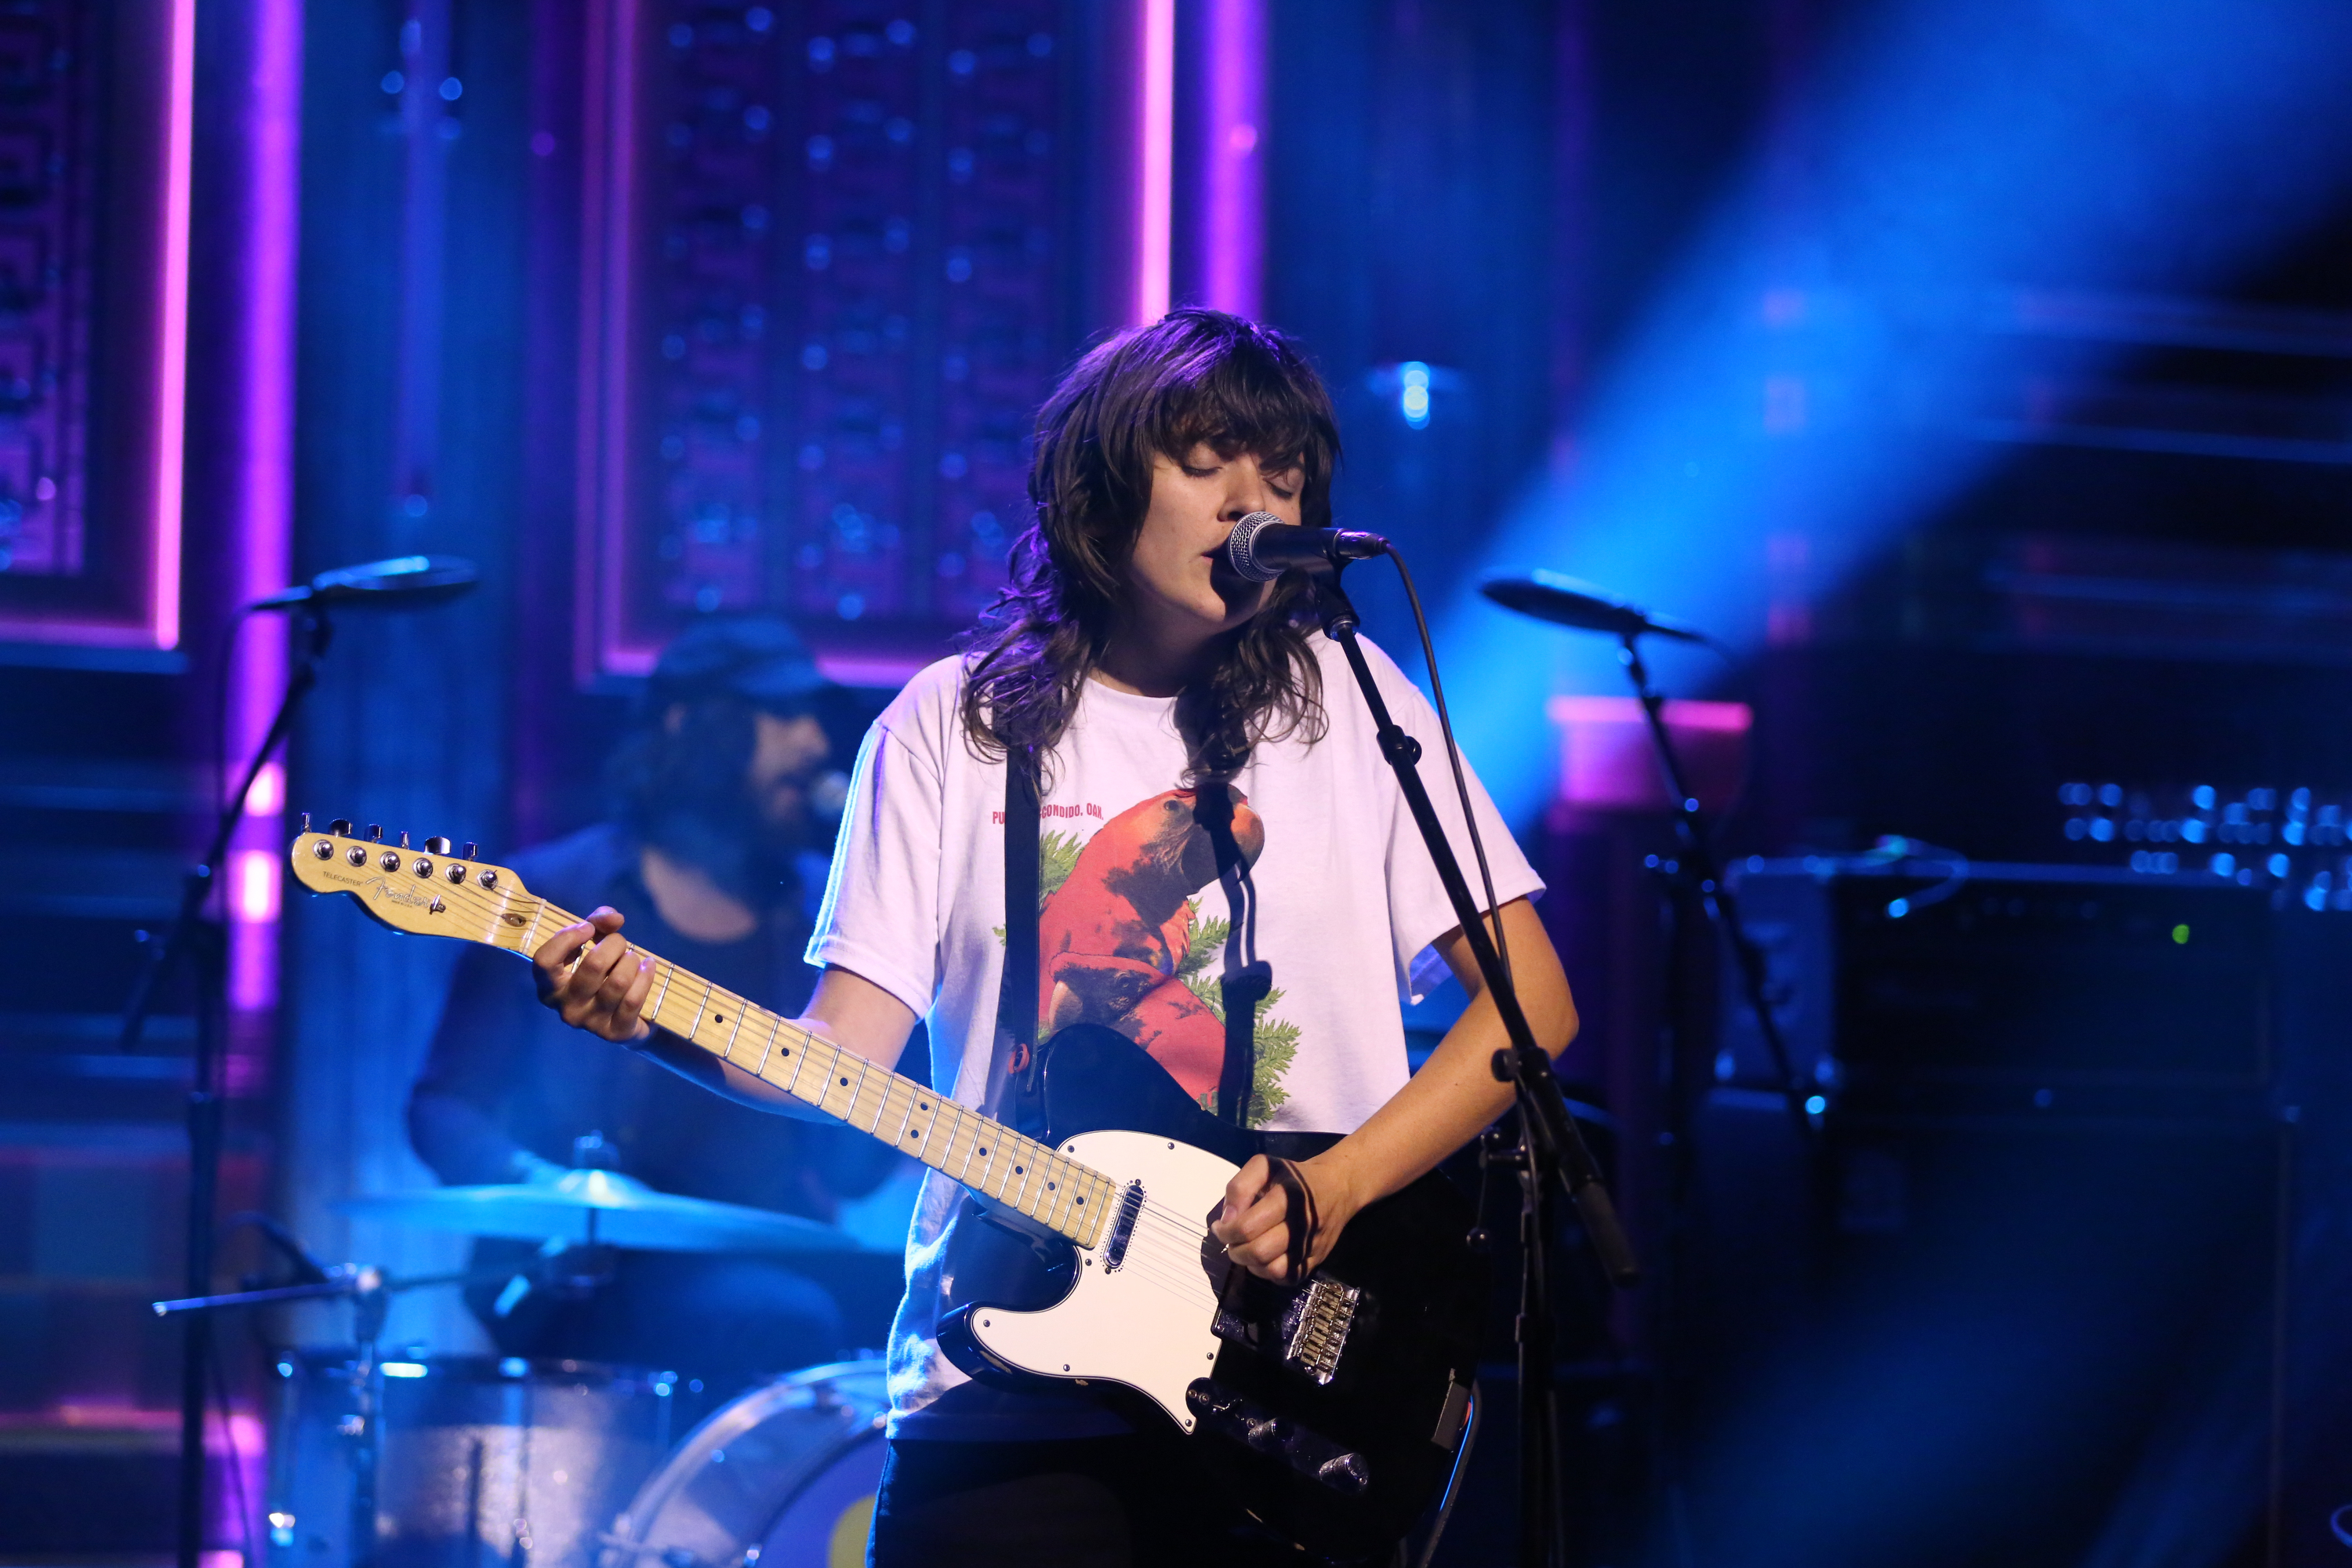 THE TONIGHT SHOW STARRING JIMMY FALLON -- Episode 0481 -- Pictured: Musical guest Courtney Barnett performs on May 27, 2016 -- (Photo by: Andrew Lipovsky/NBC/NBCU Photo Bank via Getty Images)